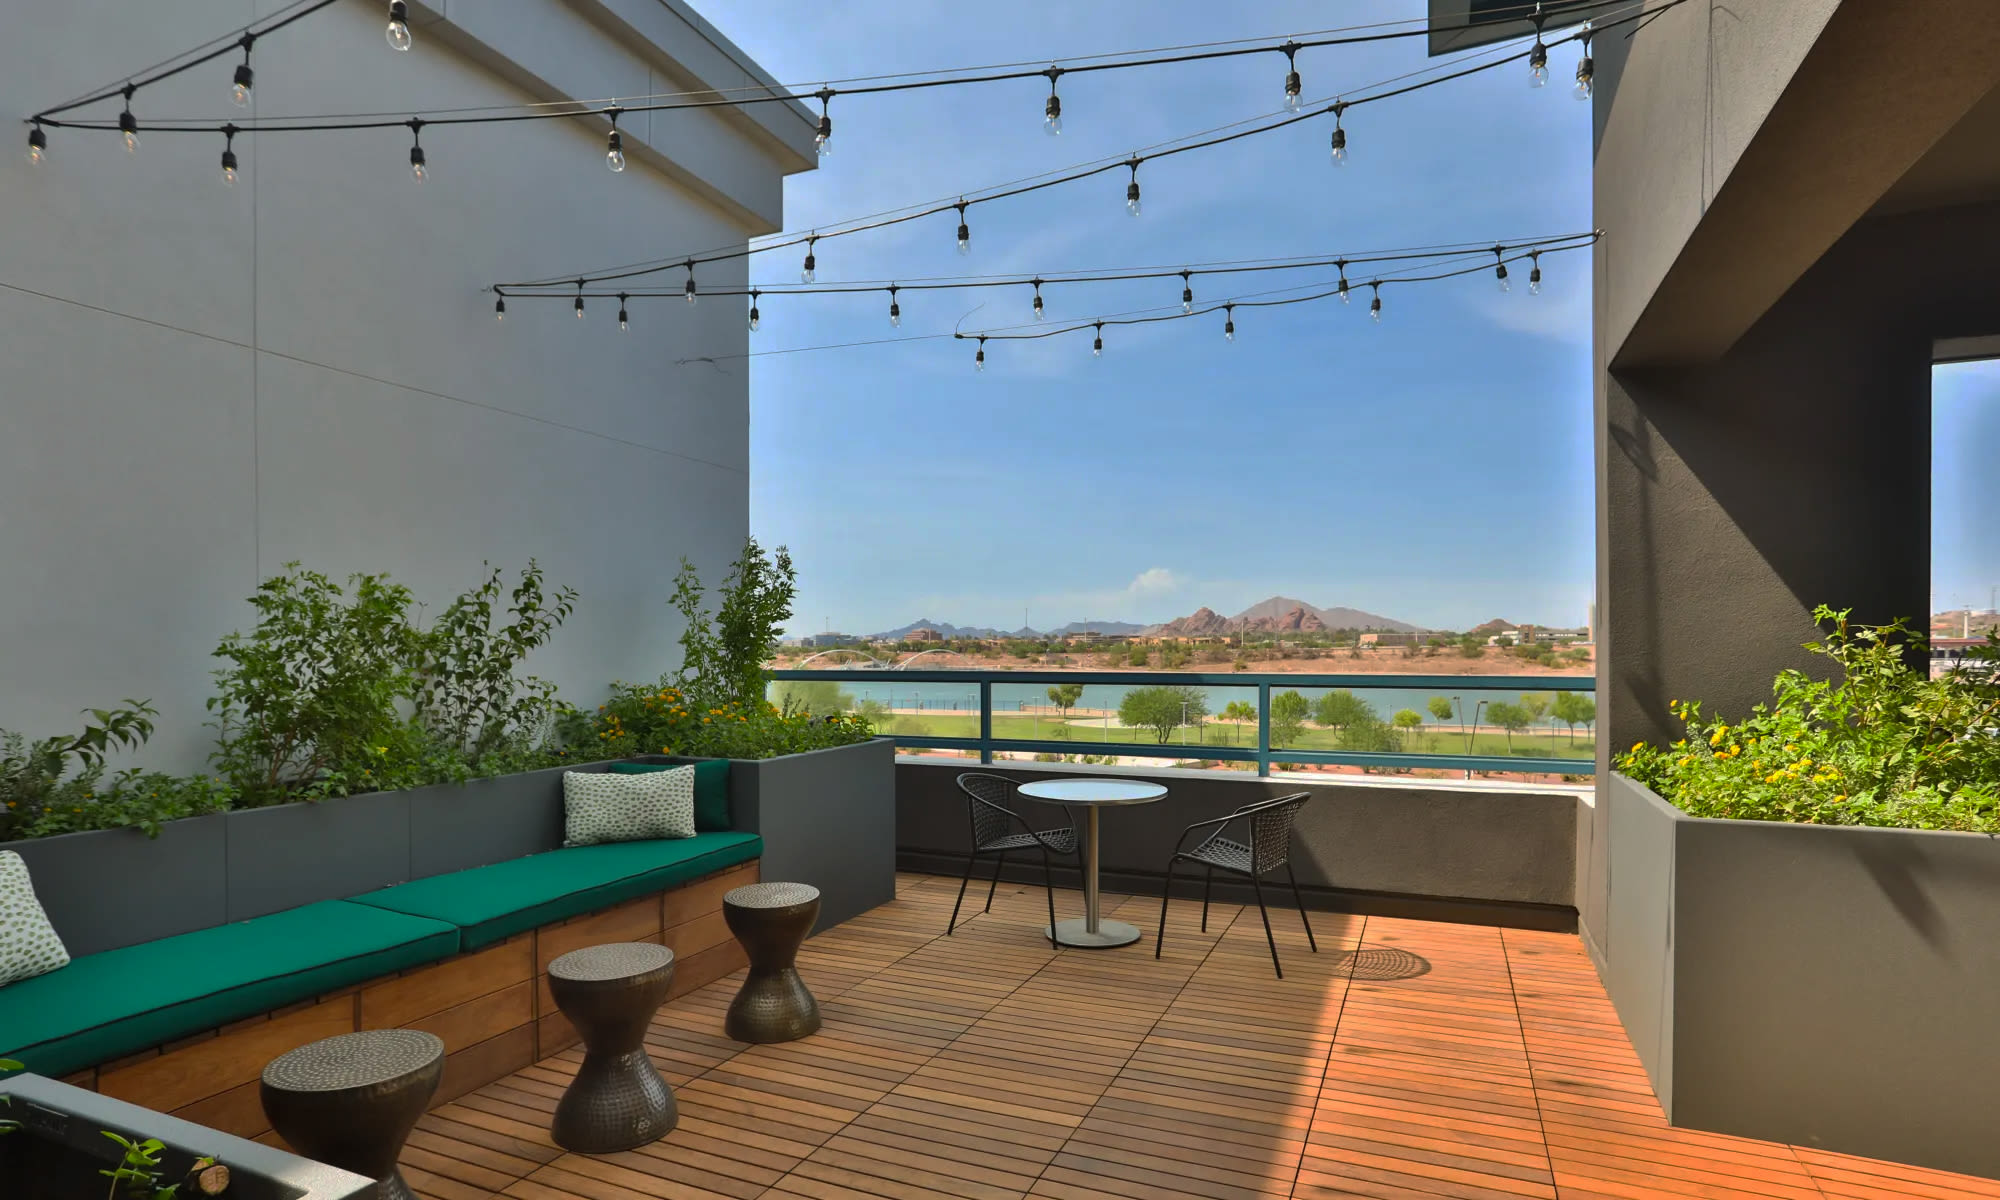 Luxury community space at Lakeside Drive Apartments in Tempe, Arizona